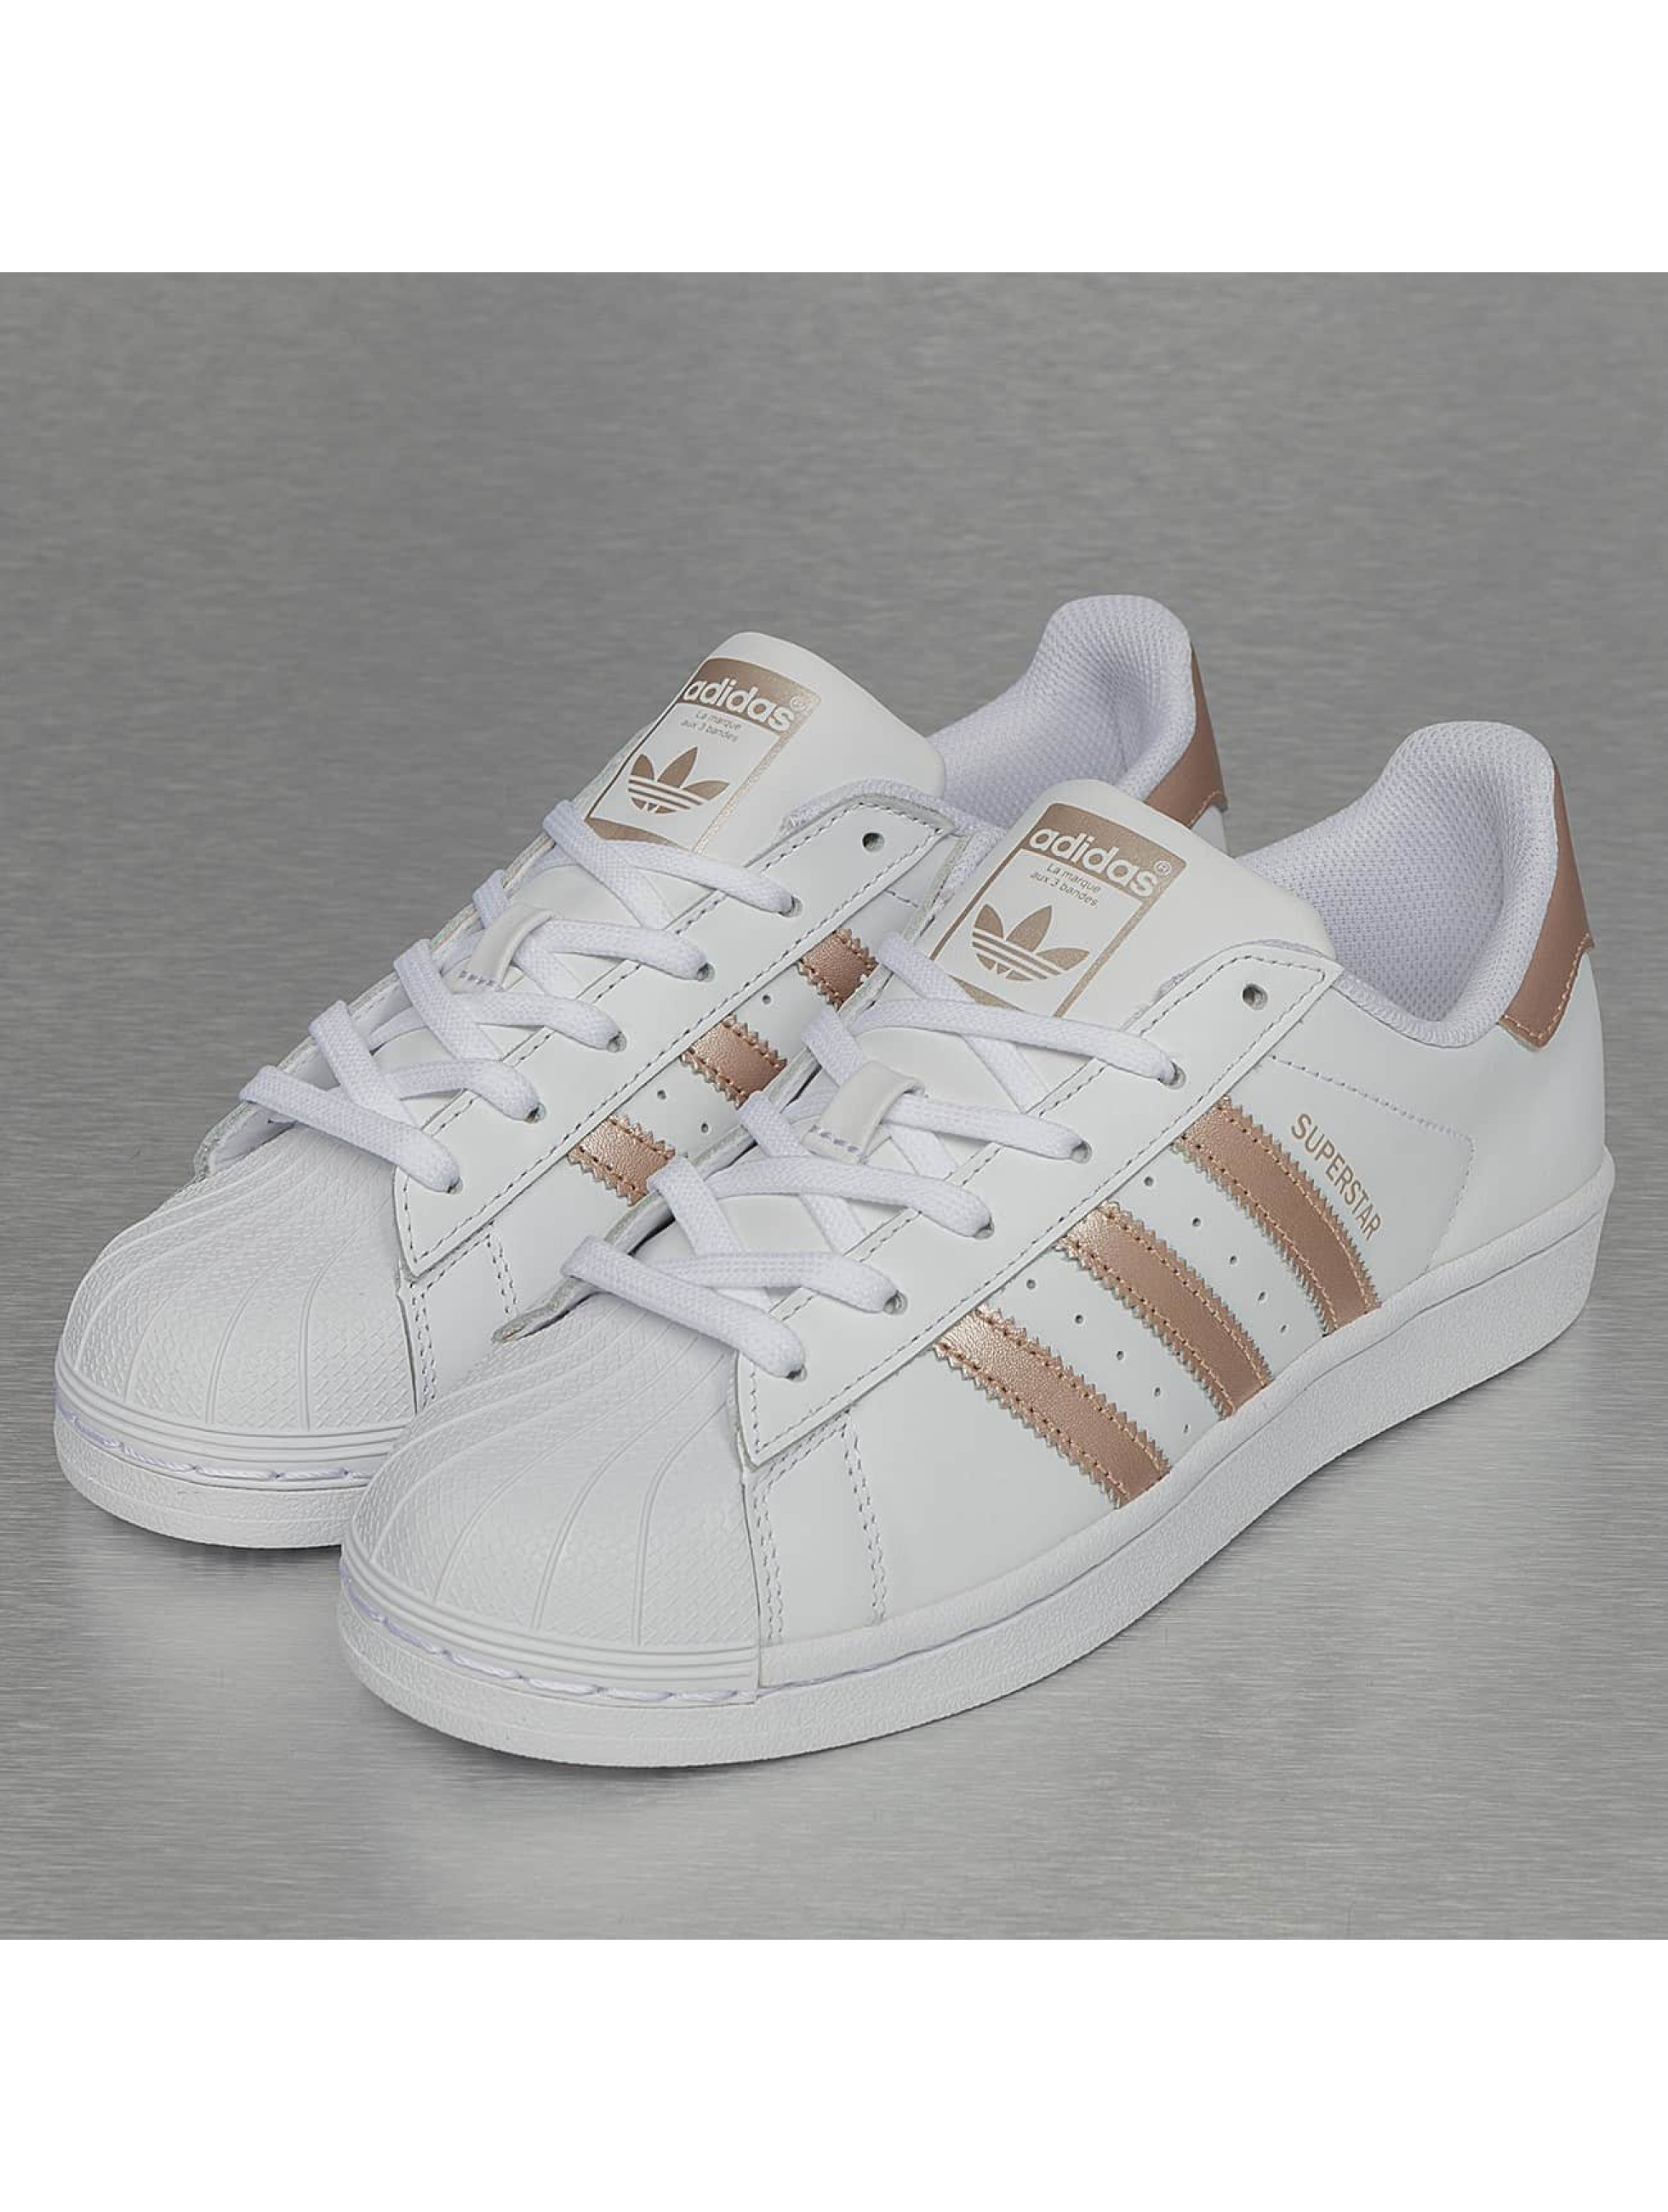 Original Rose Adidas Adidas Superstar Original wXxEWqB1